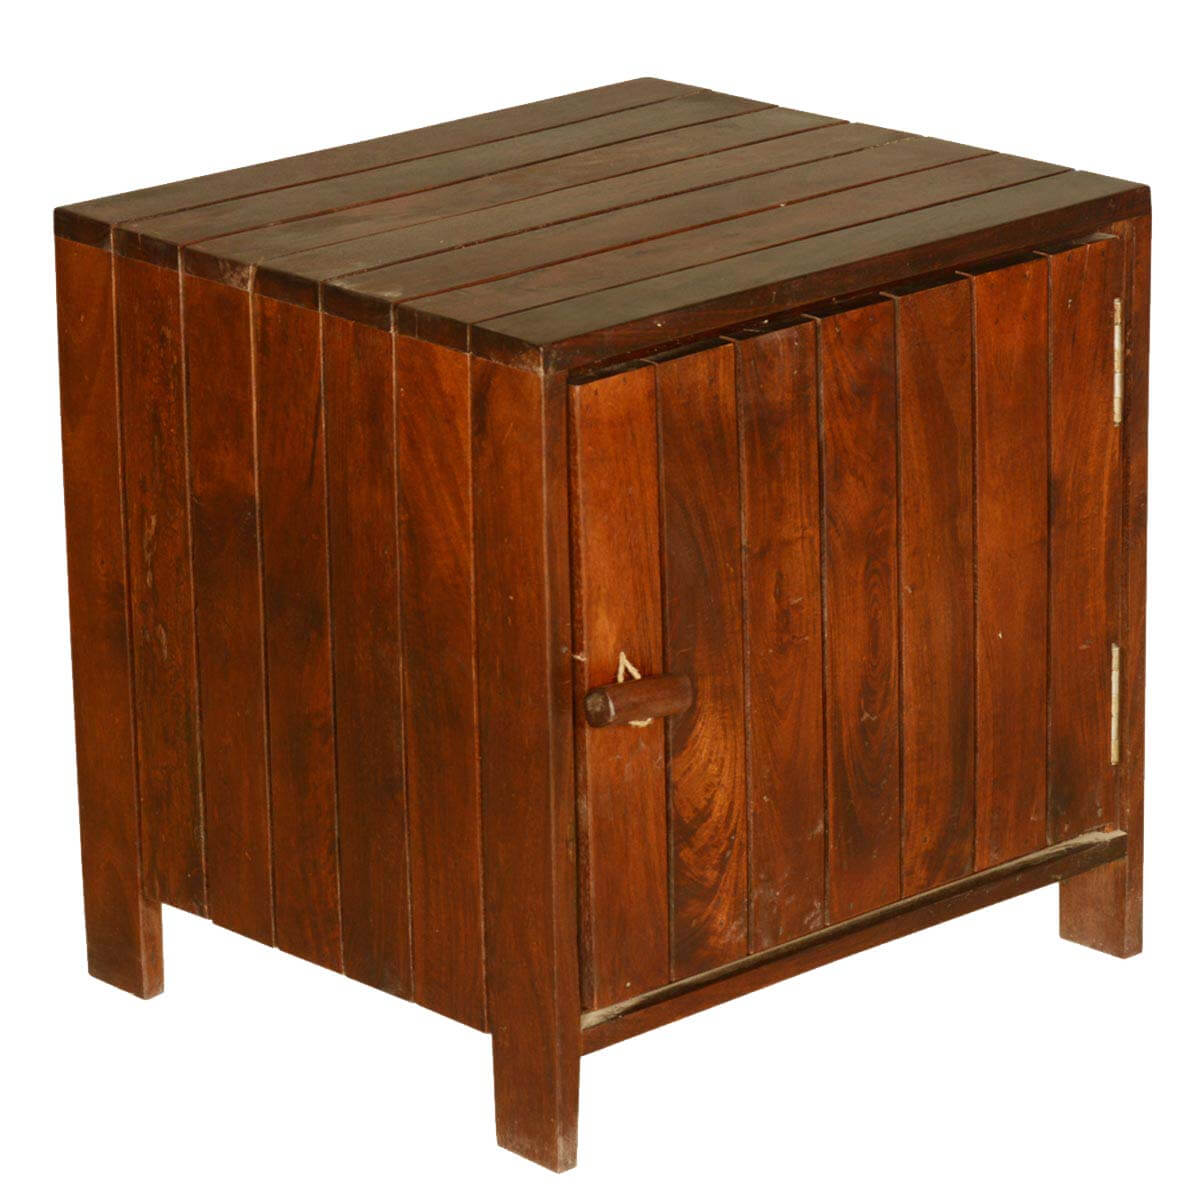 zest contemporary standing cube solid teak wood end table